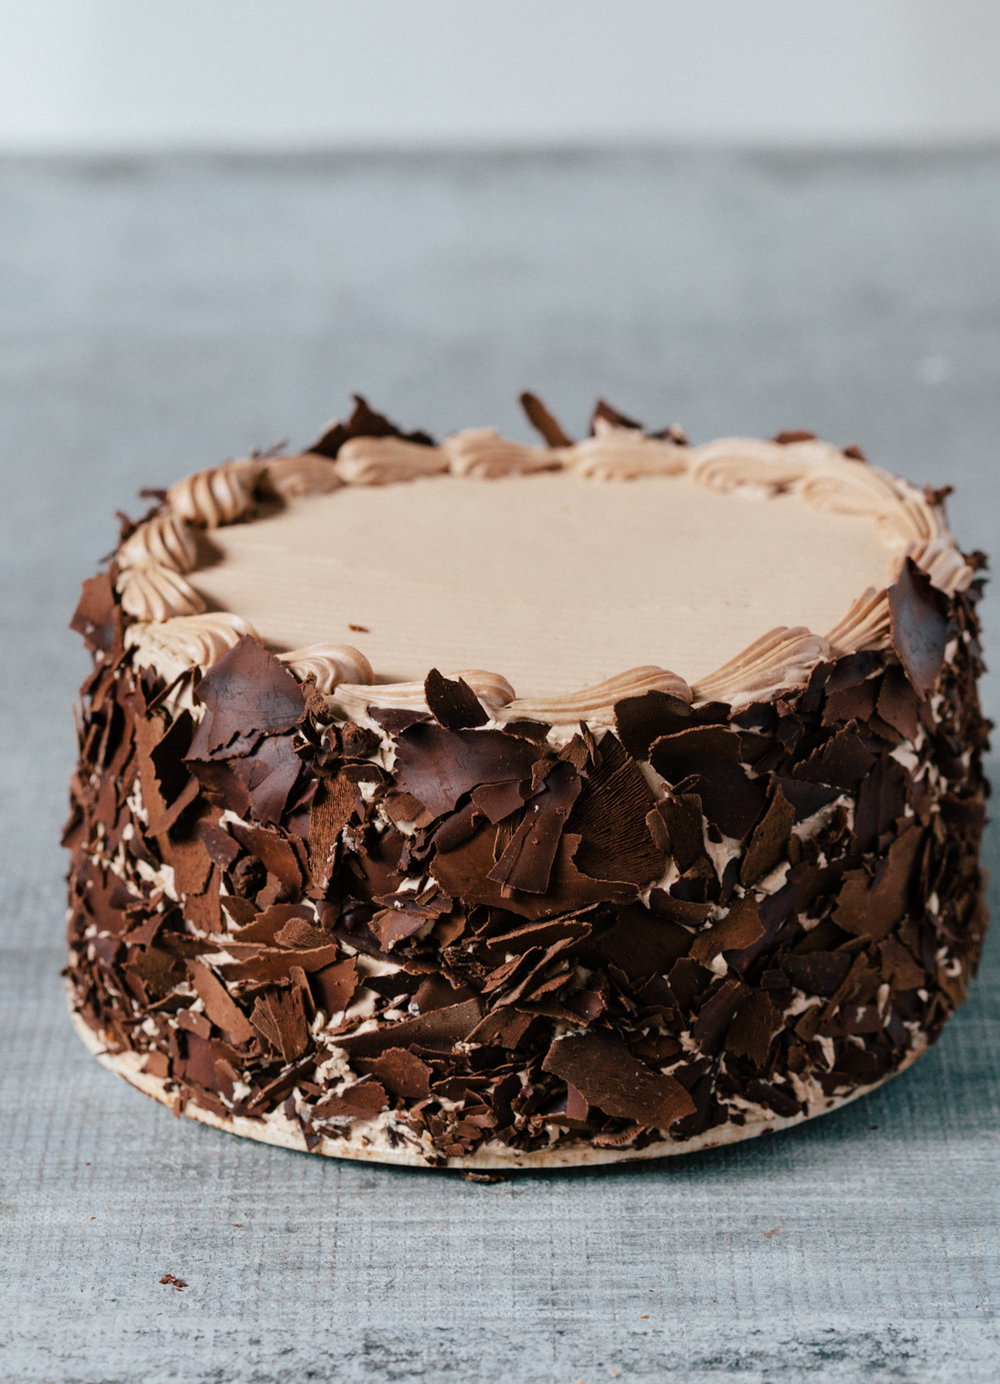 "Sacher Cake: This cake is three layers of velvety chocolate buttercream, spread over a moist Viennese chocolate sponge cake. The sides are covered in chocolate shavings. Available daily in 7"" round."